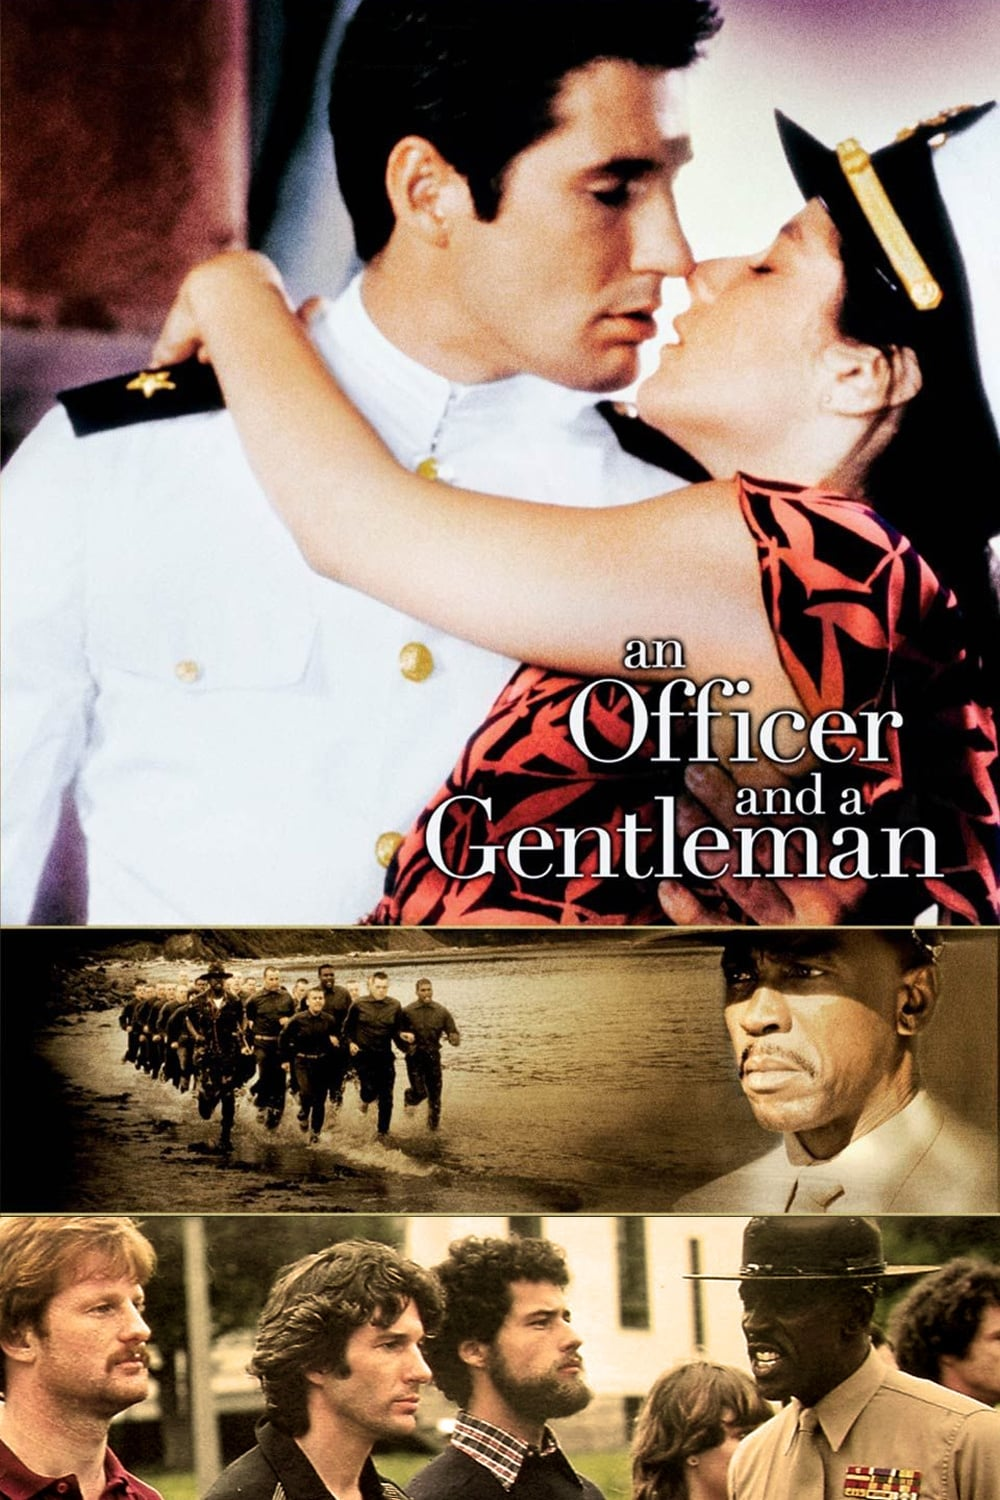 An Officer and a Gentleman 1982 WEB-Rip 1080p [3.06 GB] 720p [1.18 GB] 480p [578 MB] [Hindi DD+2.0 + English DD 5.1] | G-Drive